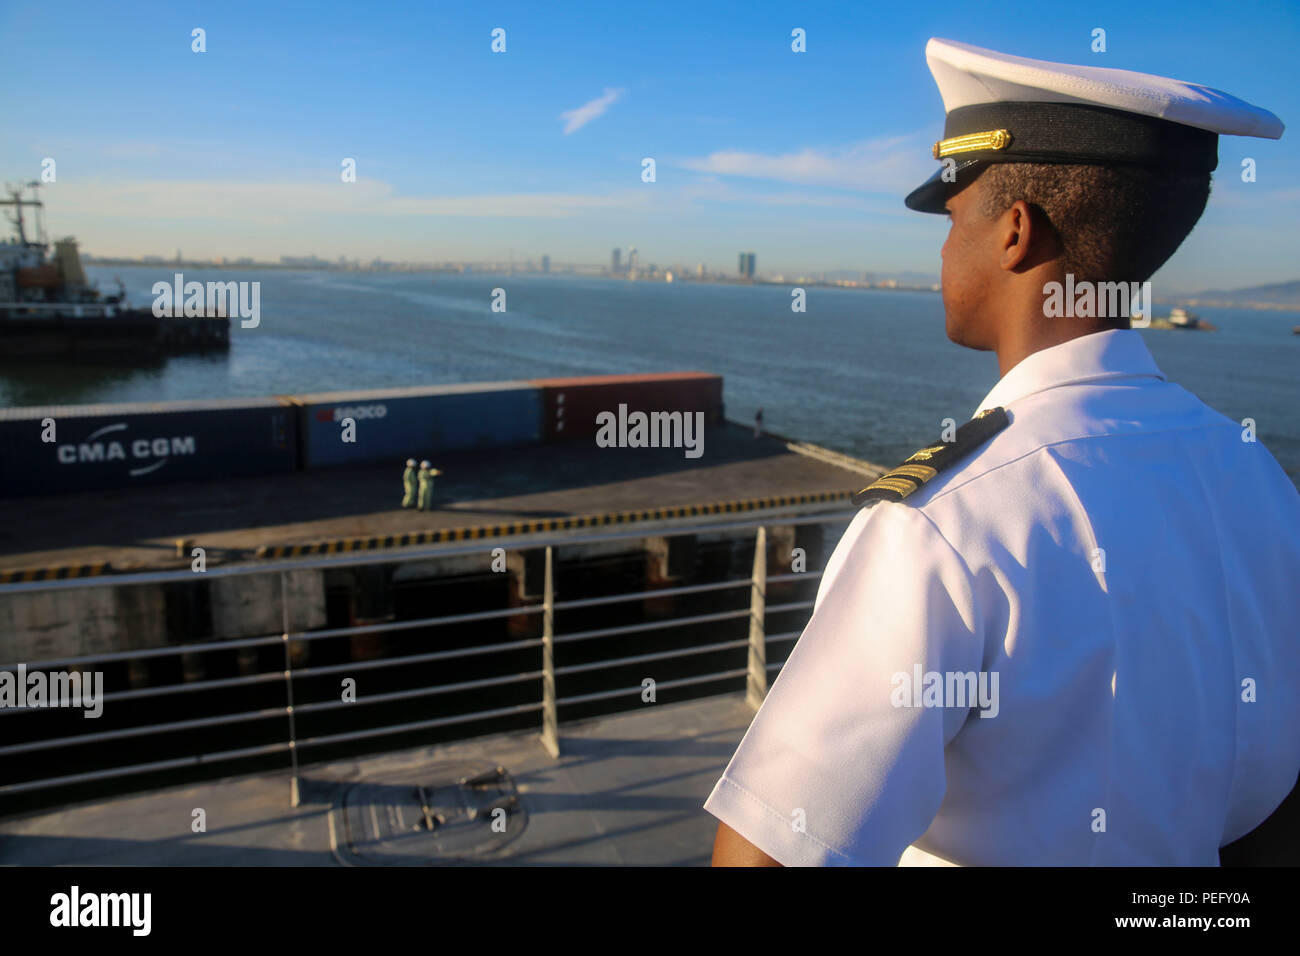 150817-M-GO800-055 DA NANG, Vietnam (August 17, 2015) – Lt. Orlando White mans the rails aboard the Military Sealift Command joint high speed vessel USNS Millinocket (JHSV 3) Aug. 17 as the ship arrives in Vietnam. Task Force Forager, embarked aboard Millinocket is serving as the secondary platform for Pacific Partnership, led by an expeditionary command element from the Navy's 30th Naval Construction Regiment (30 NCR) from Port Hueneme, California. Now in its 10th iteration, Pacific Partnership is the largest annual multilateral humanitarian assistance and disaster relief preparedness mission - Stock Image